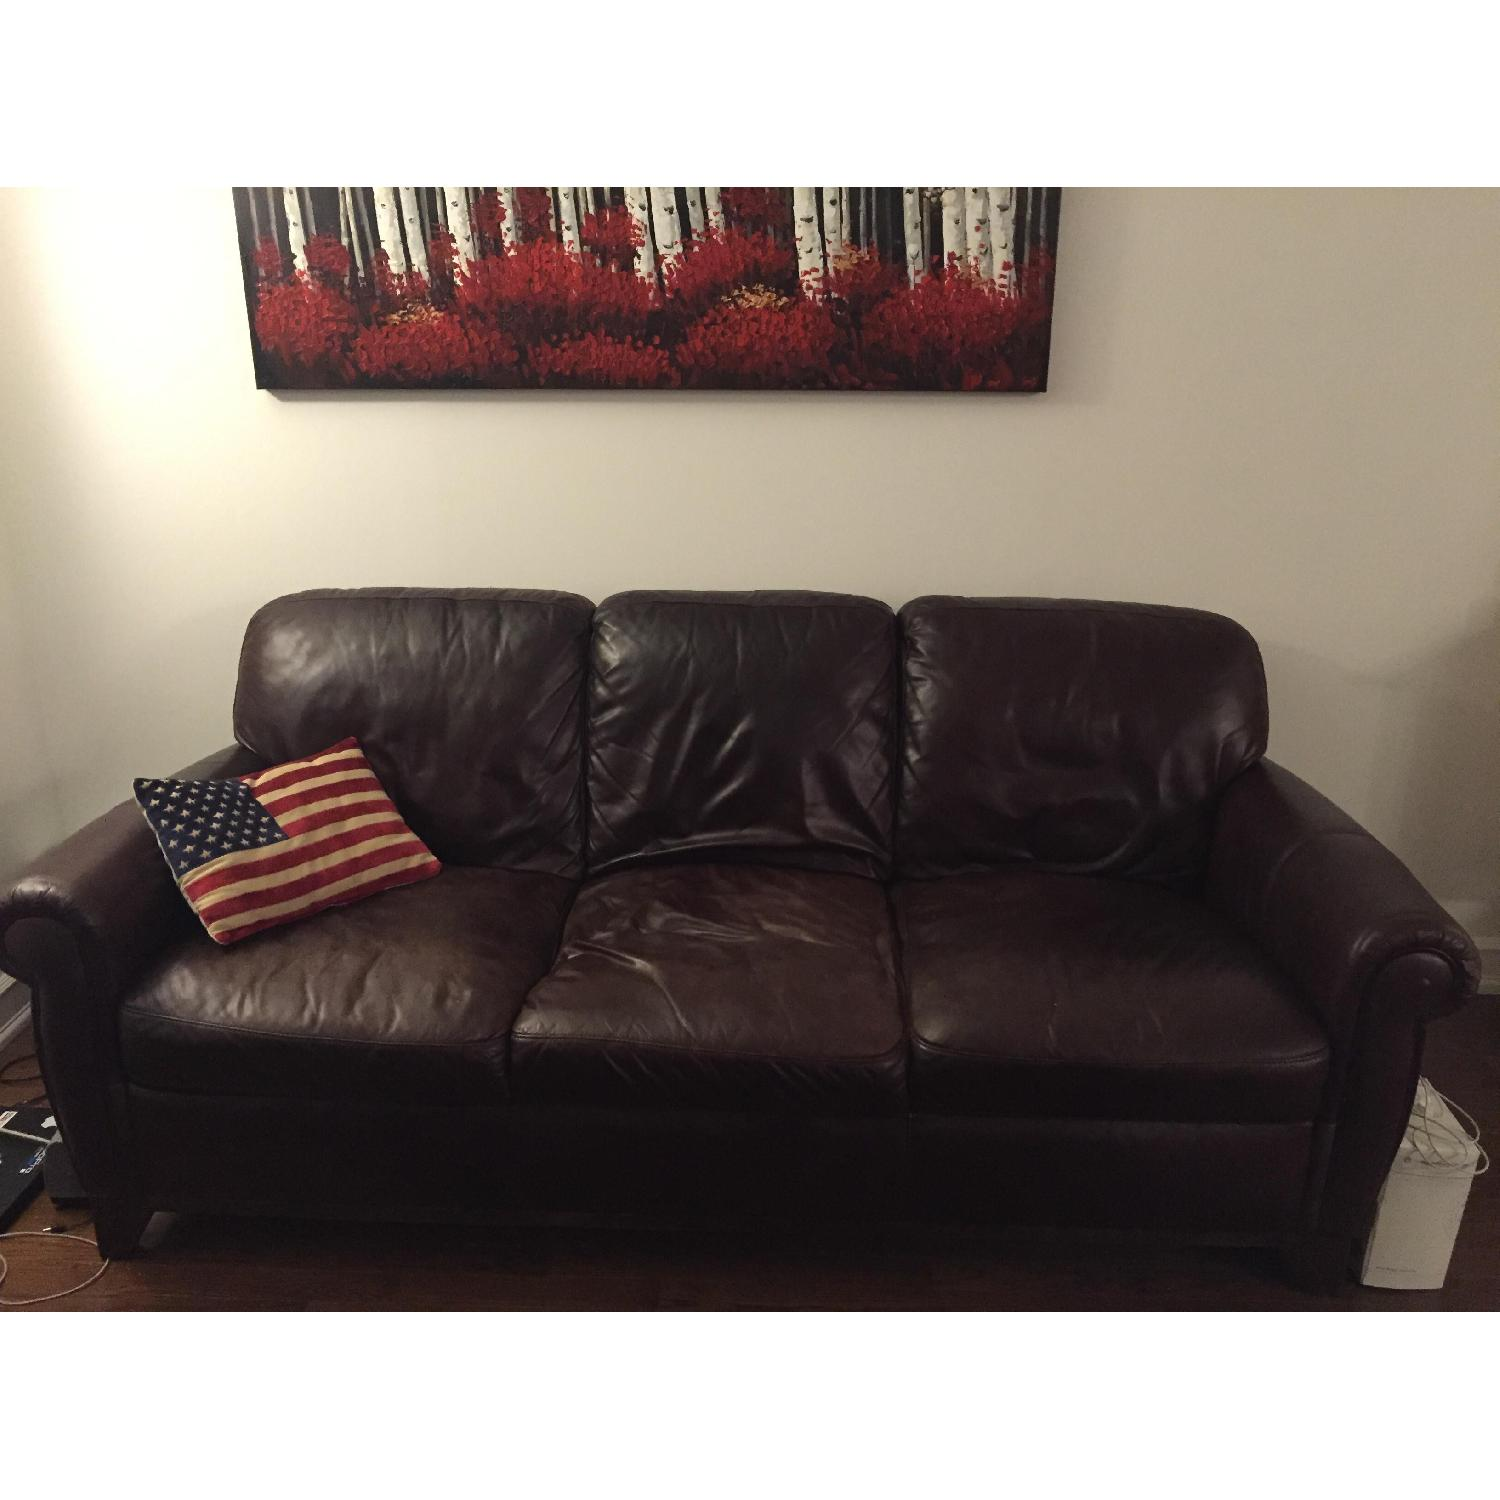 Raymour & Flanigan Jackson Leather Couch - image-2